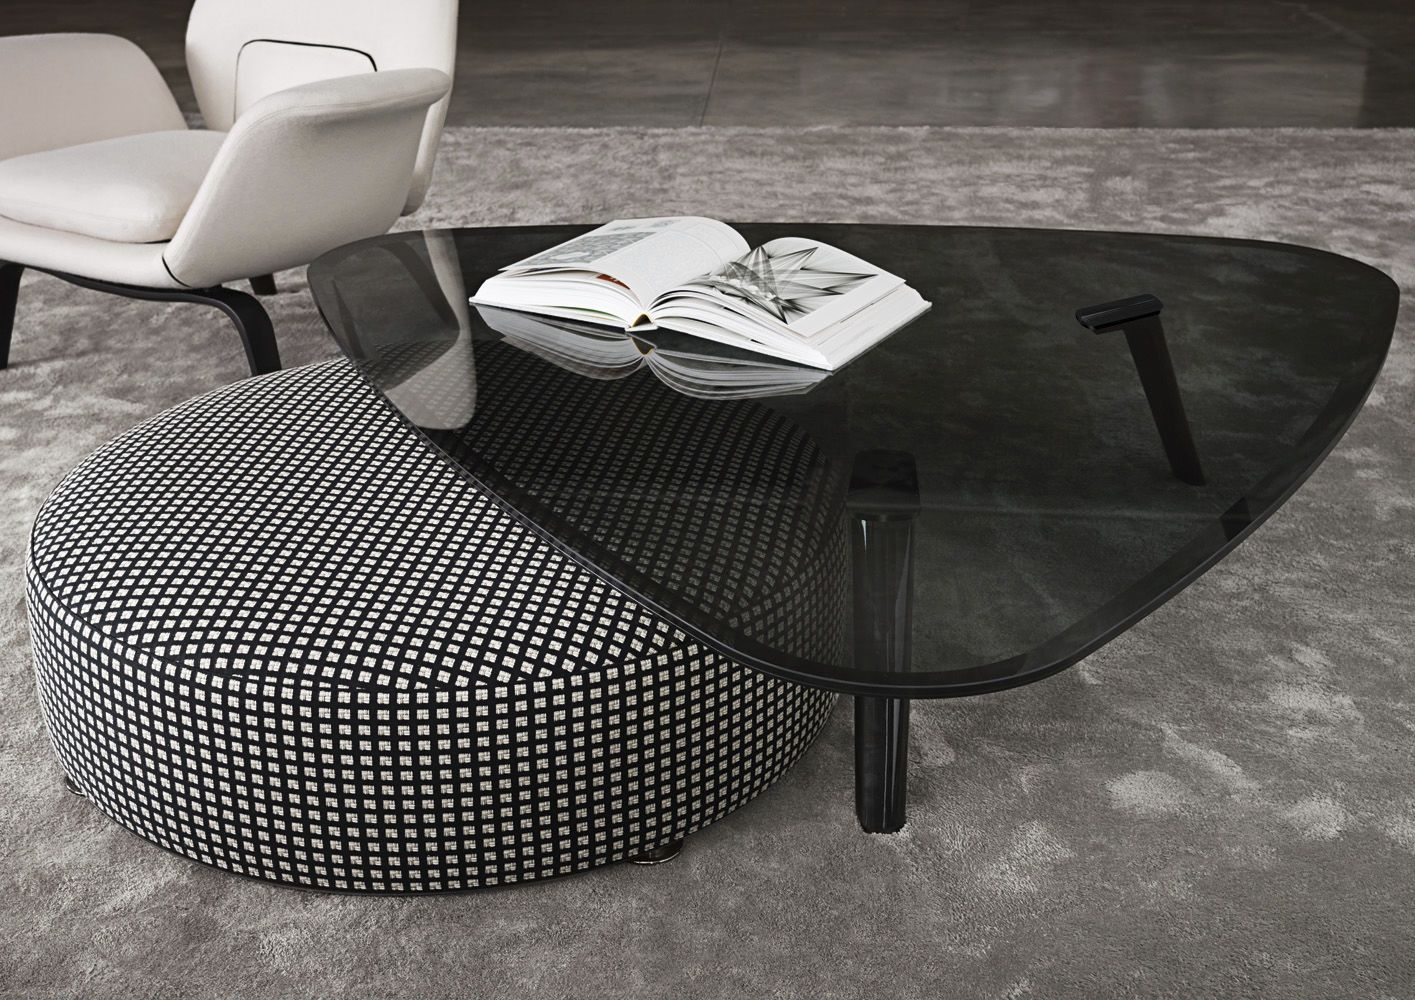 Coffee Table Contemporary Glass Aluminum Sullivan Minotti Sullivan Coffee Table Contemporary Coffee Table Coffee Table Design [ 1000 x 1415 Pixel ]